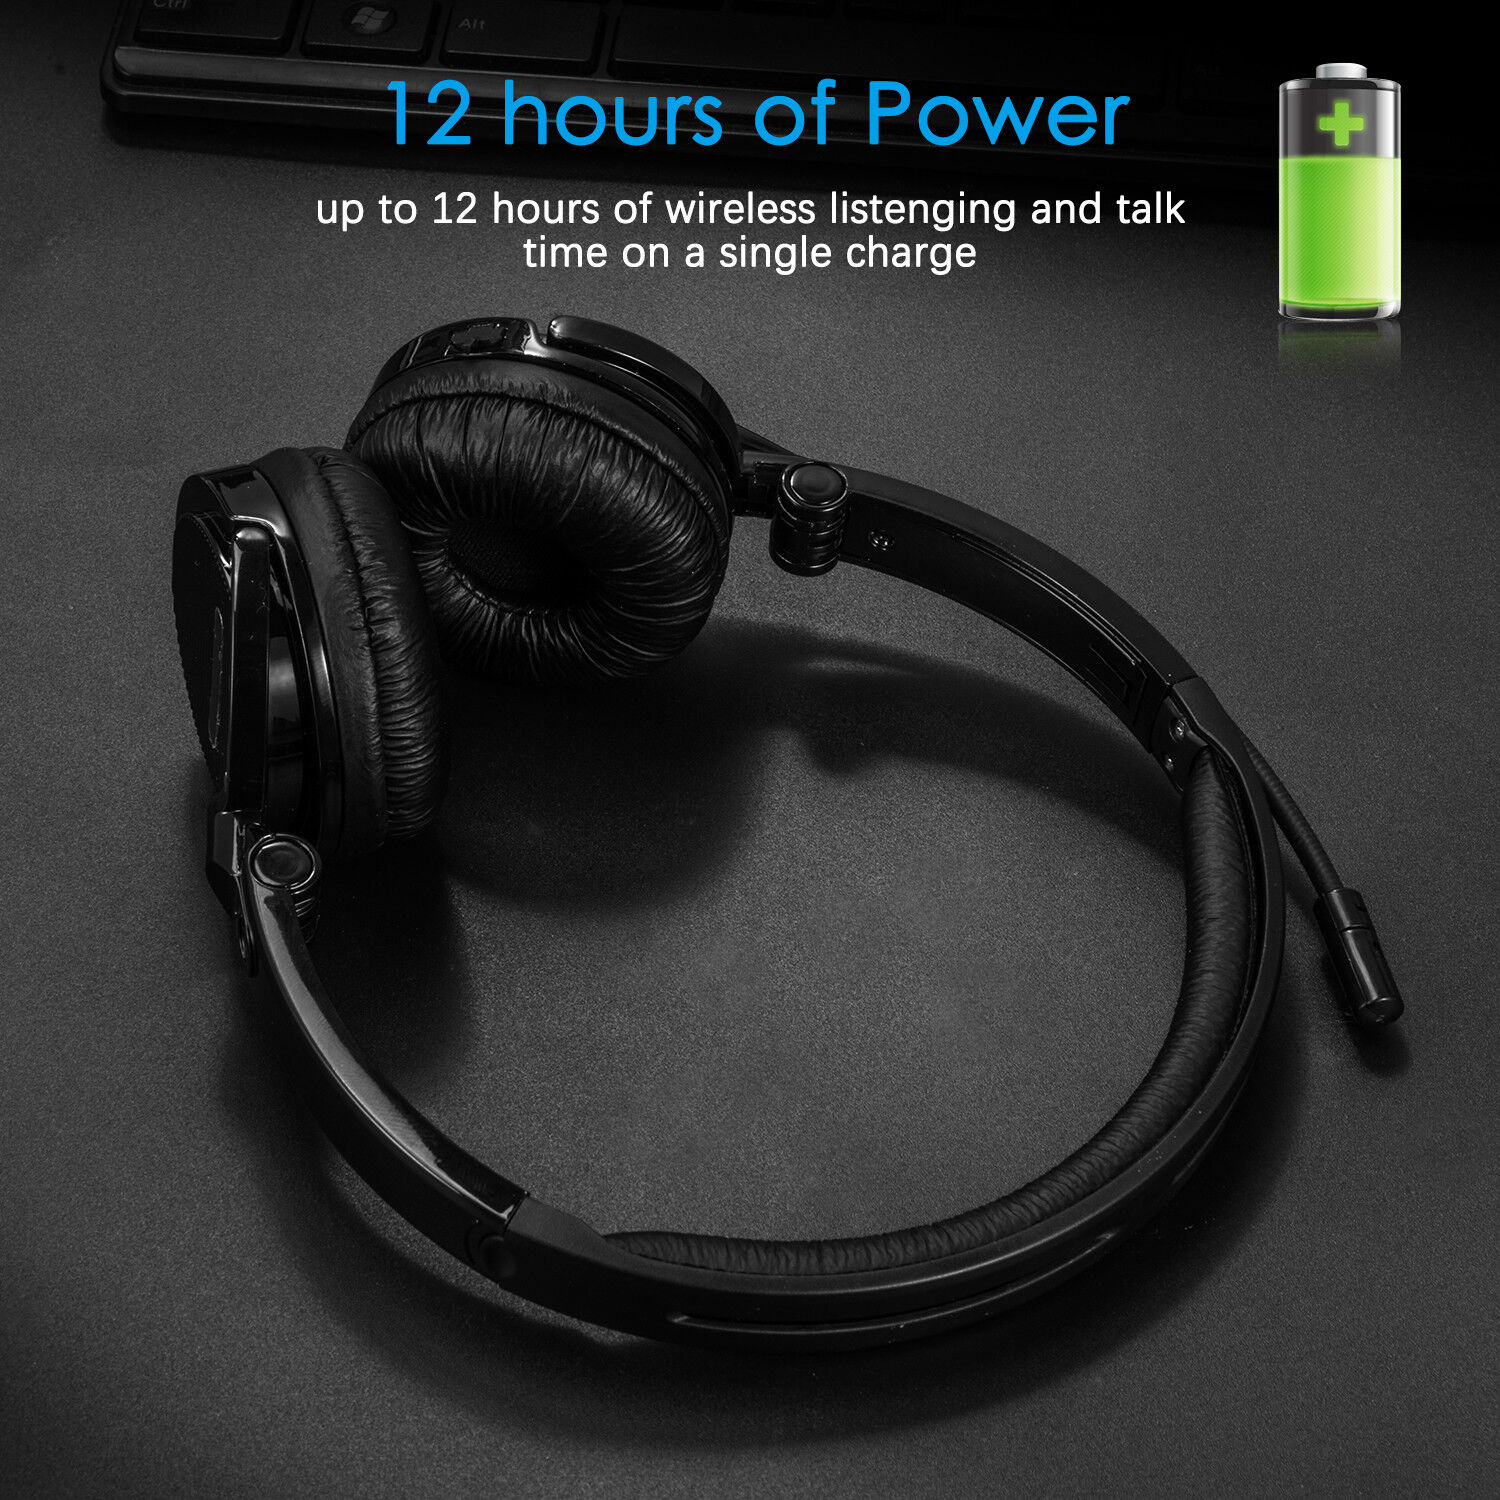 Buletooth Headset Stereo Headphone for PC Gaming Music Lapto